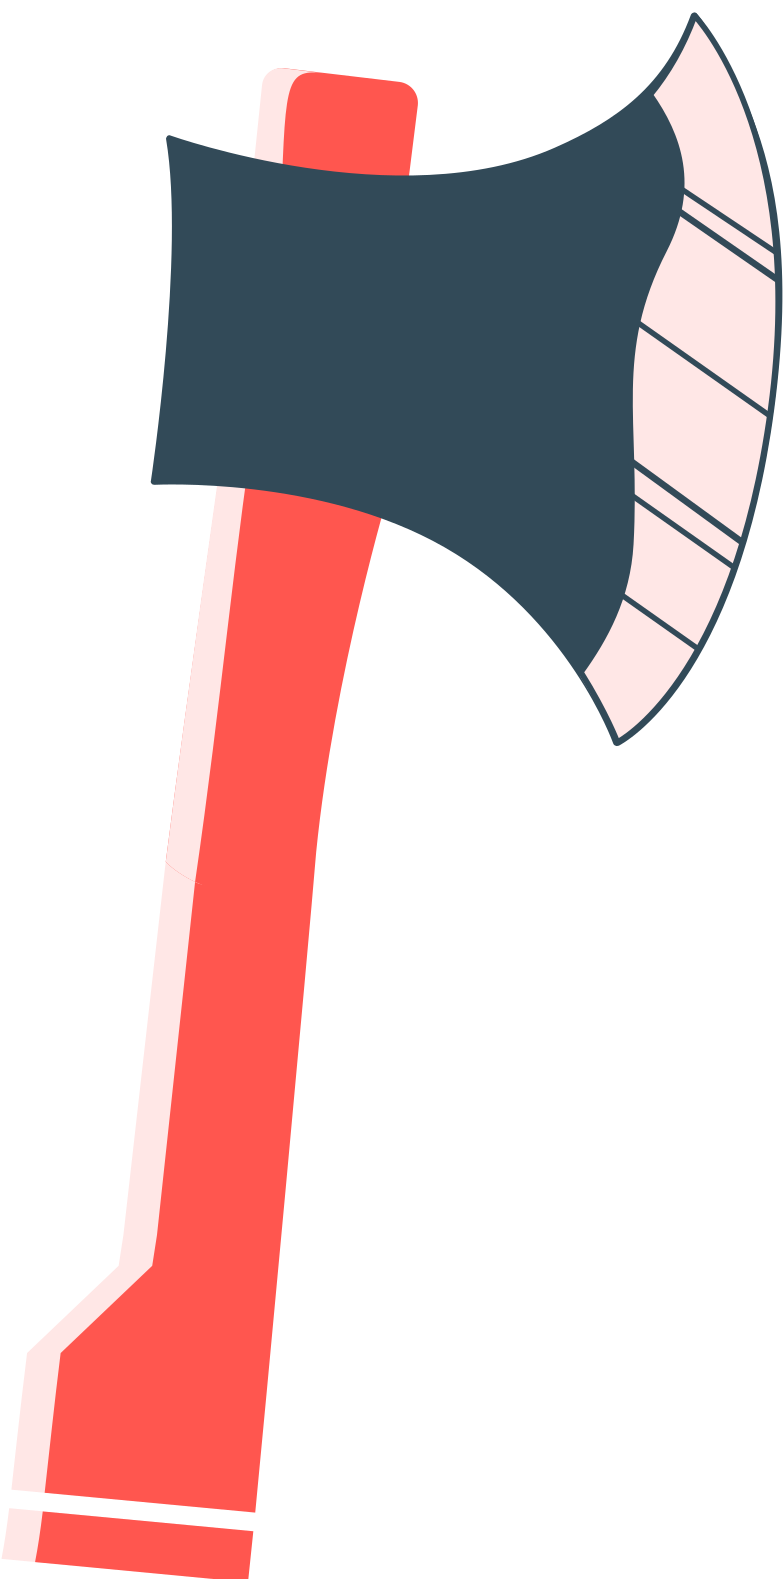 axe Clipart illustration in PNG, SVG